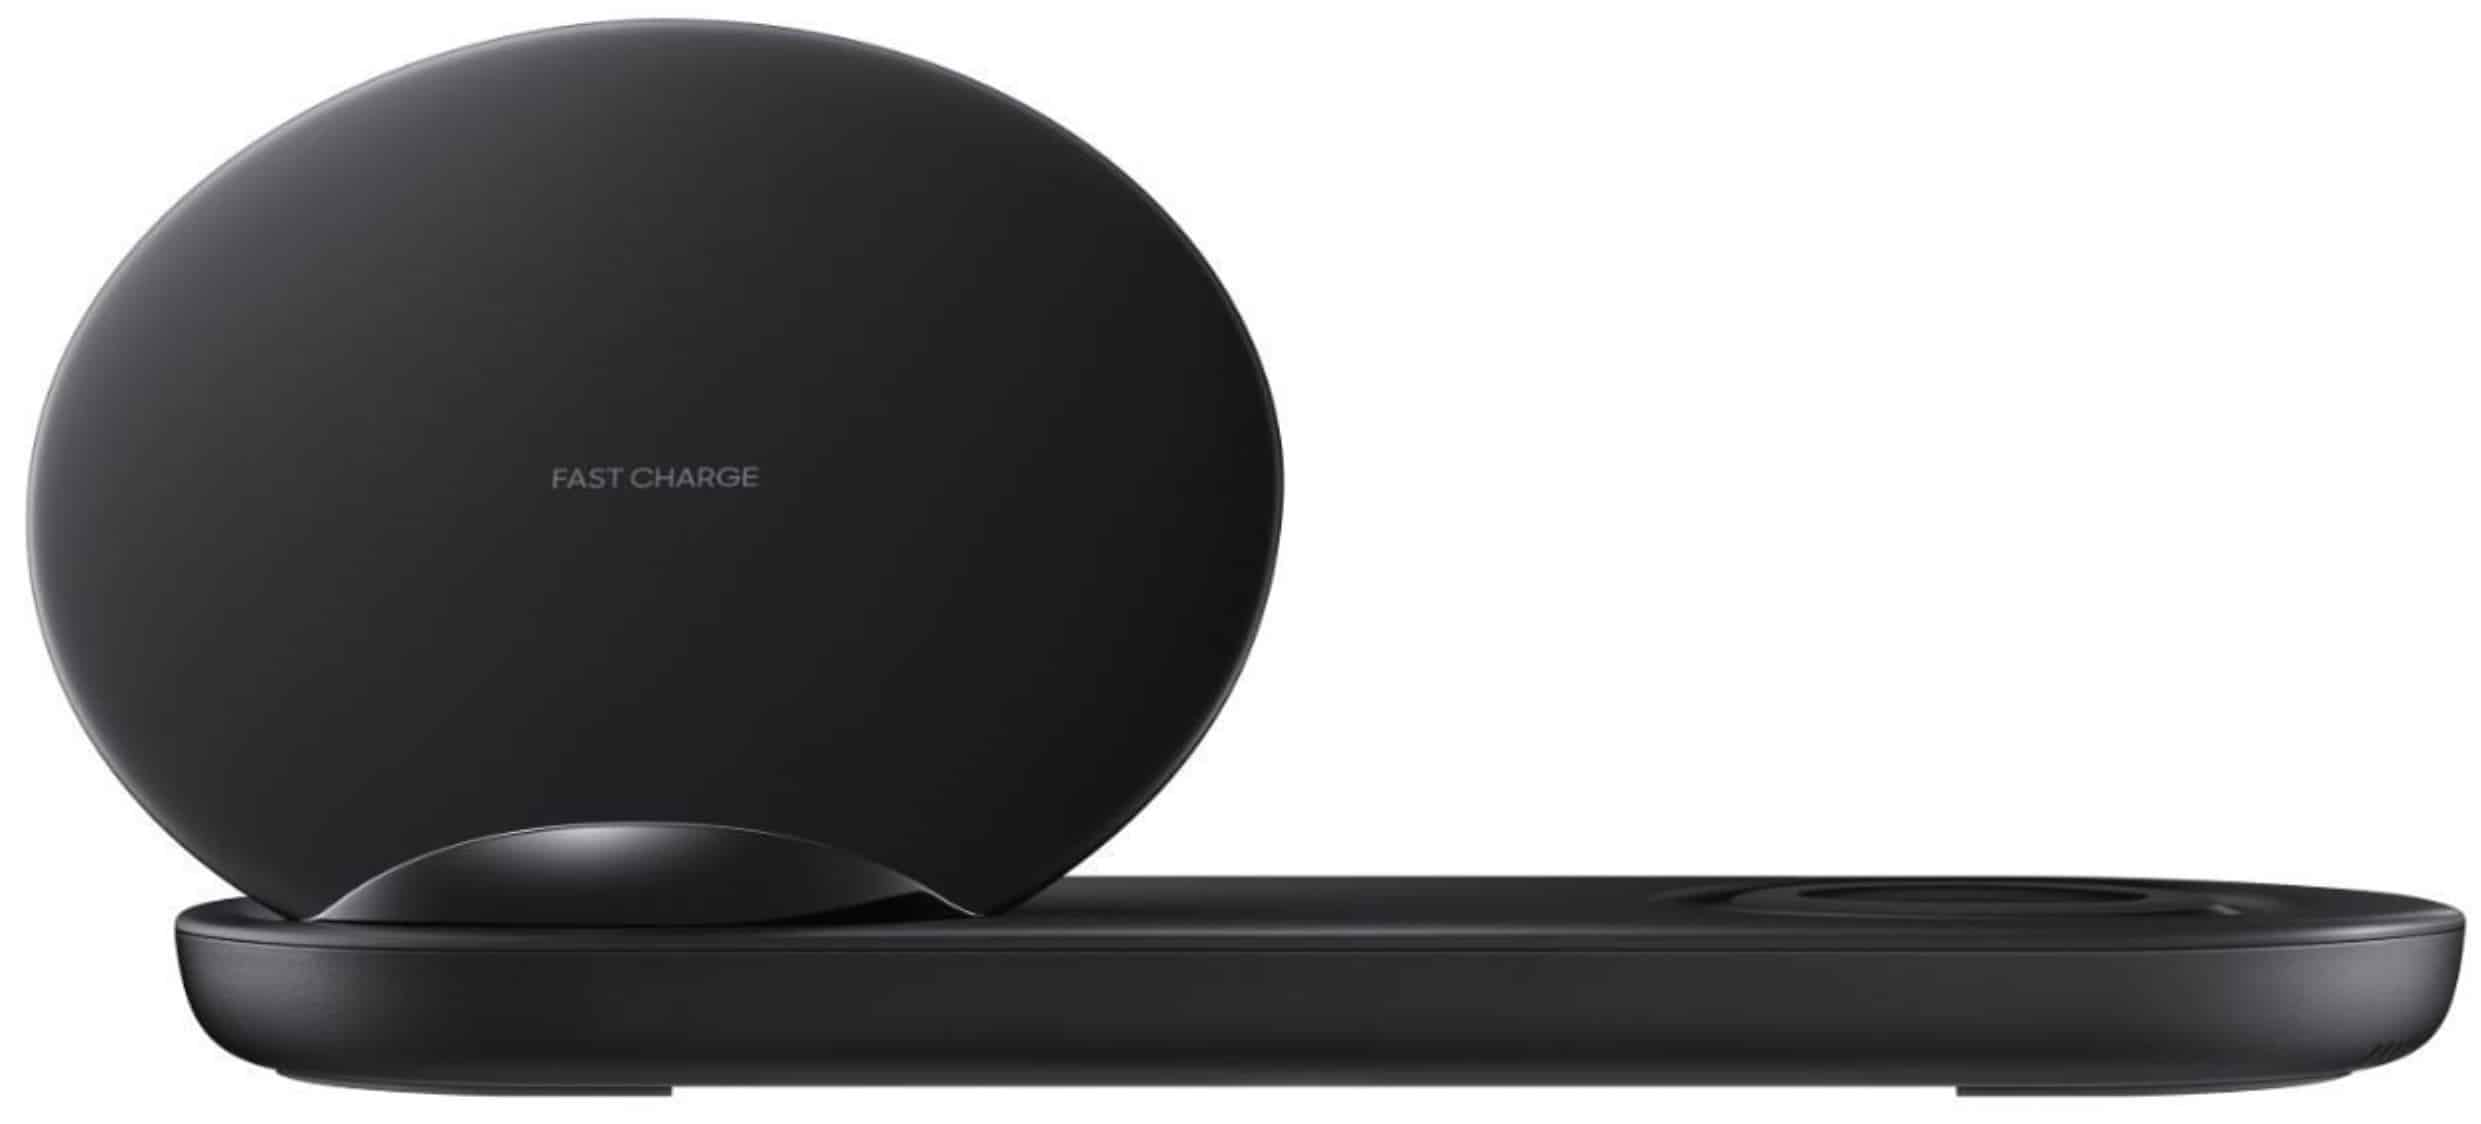 EP P3100 Samsung Wireless Charger Duo Roland Quandt July 28 18 4